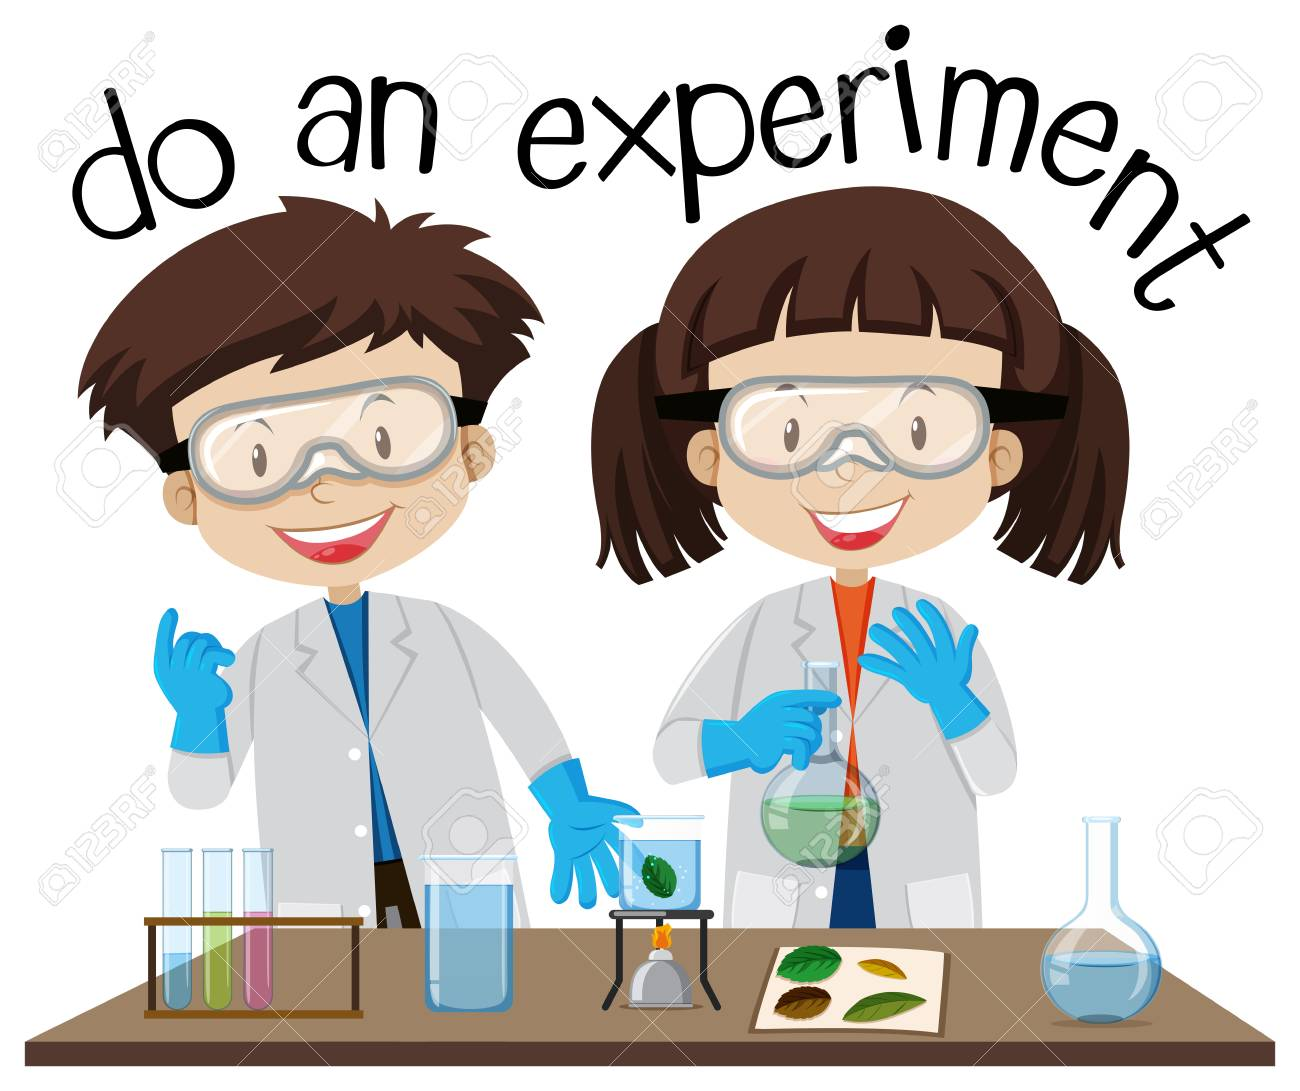 Two Kids Doing Experiment In Science Lab Illustration Royalty Free Cliparts Vectors And Stock Illustration Image 98032443